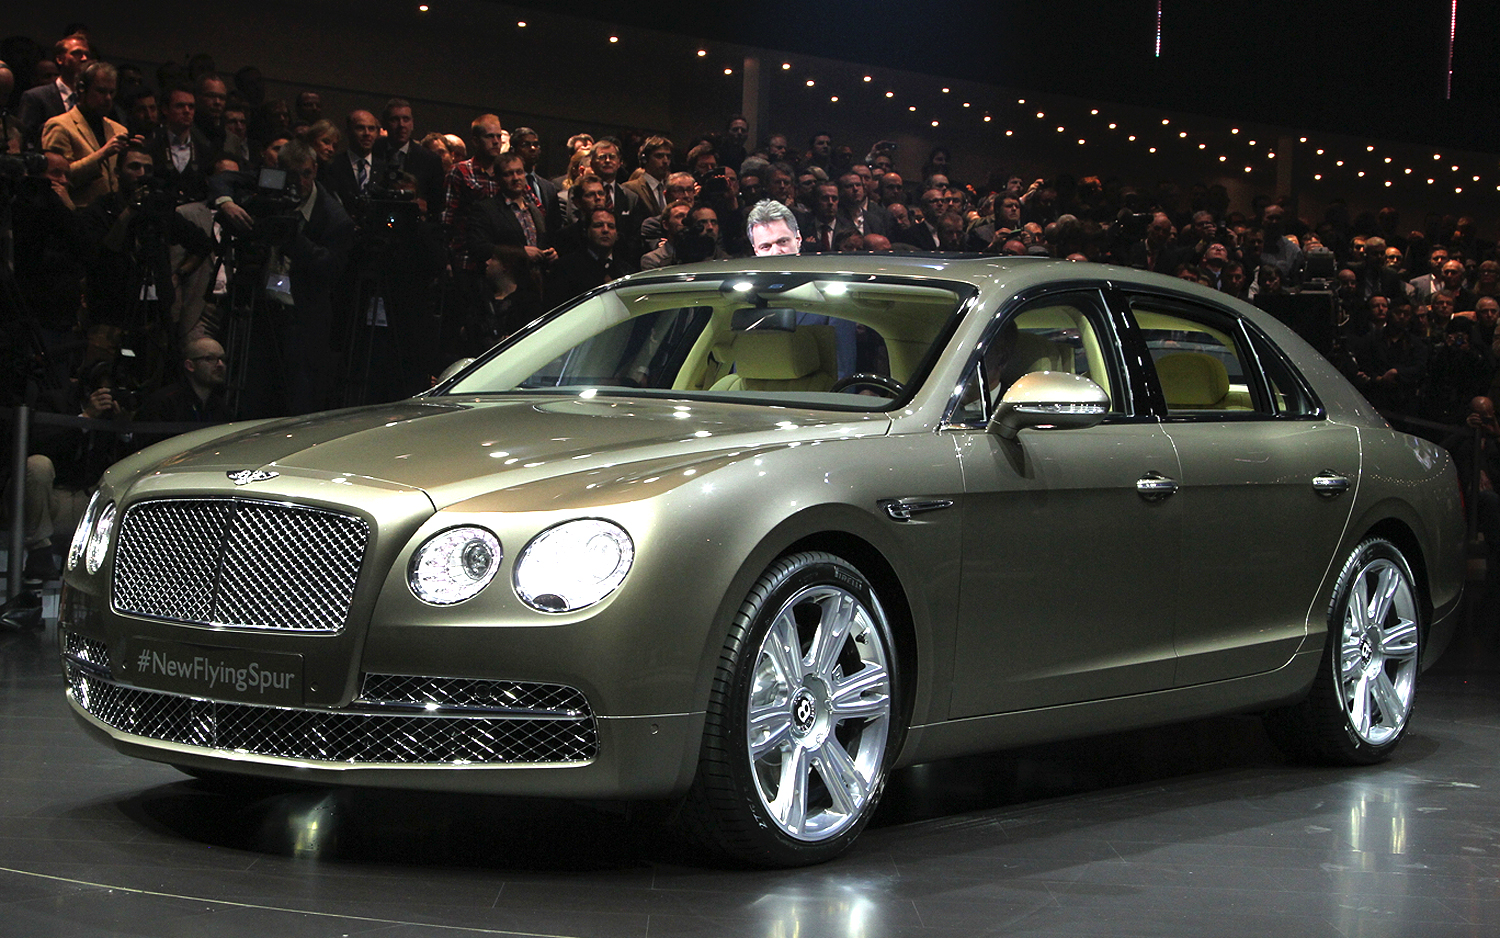 bentley flying spur debuts at geneva is most powerful bentley new cars reviews. Black Bedroom Furniture Sets. Home Design Ideas